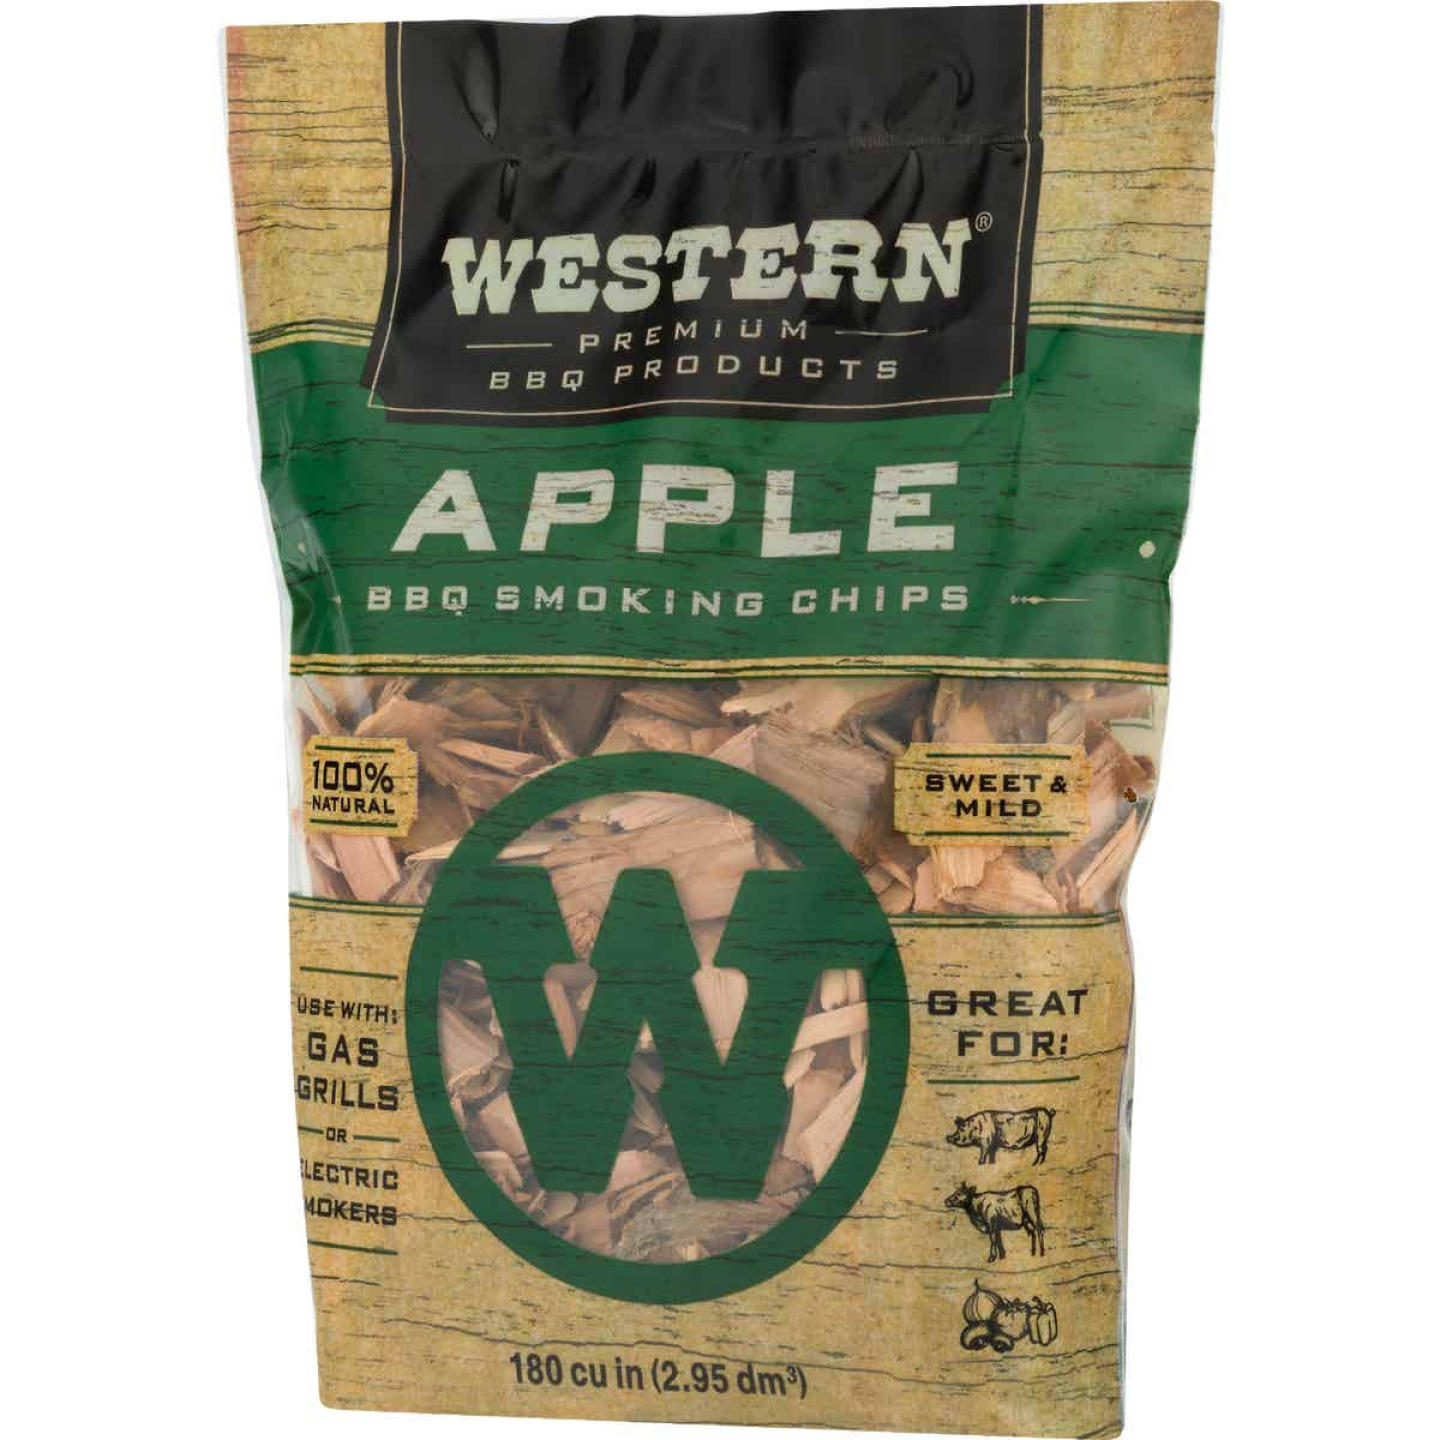 Western 2 Lb. Apple Wood Smoking Chips Image 5